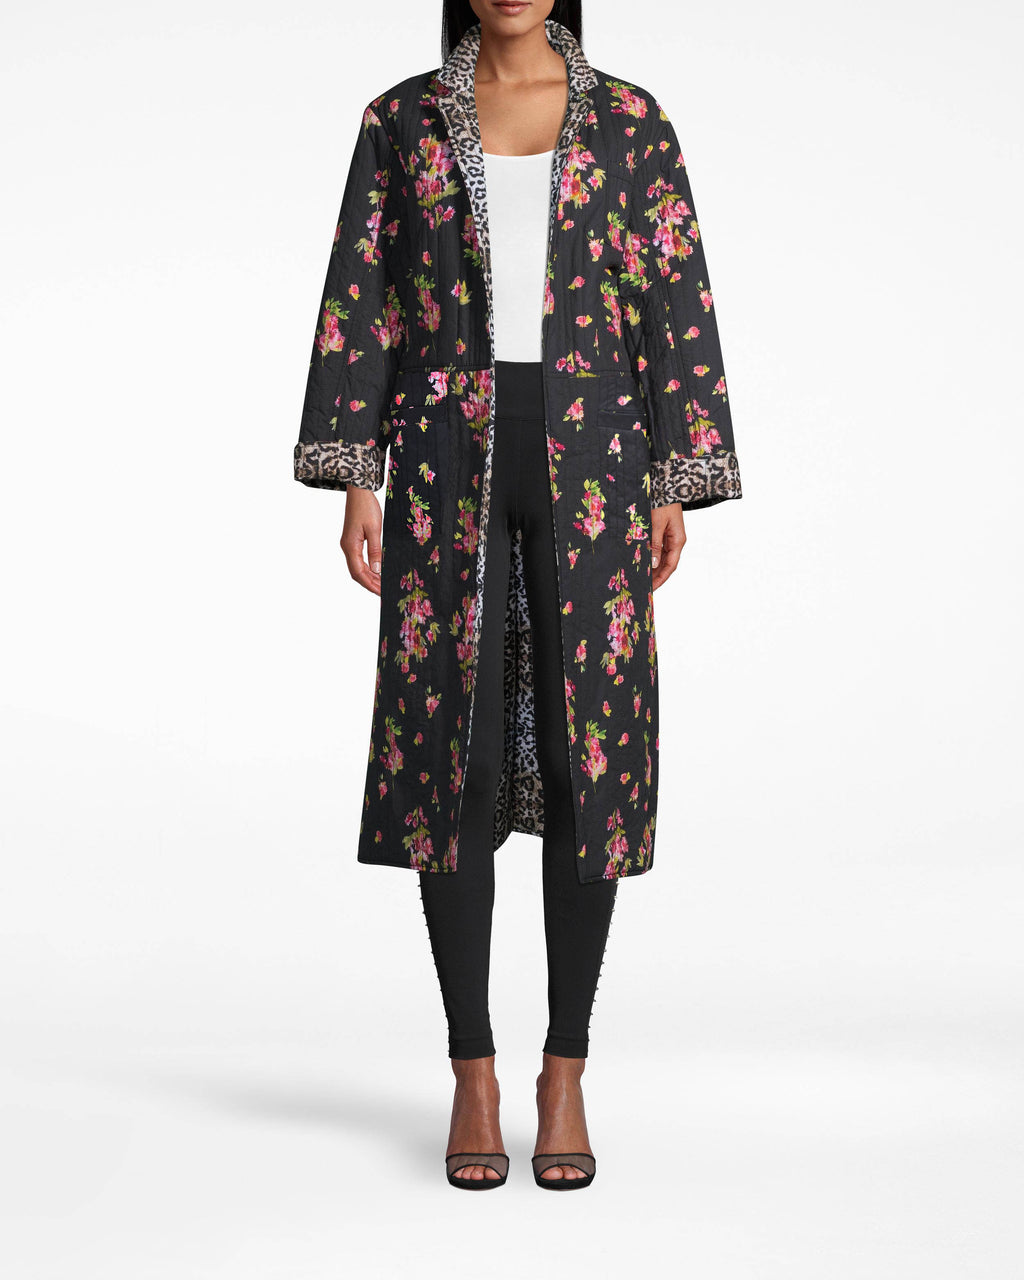 CO20165 - PINK DAWN REVERSIBLE OVERSIZED JACKET - outerwear - jackets - FLORA AND FAUNA. LEOPARD AND FLORAL PRINTS ARE AN UNEXPECTED BUT WELCOME SURPRISE ON THIS STATEMENT COAT. ANKLE LENGTH WITH A TIE WAIST. PAIR WITH ALLBLACK AND RAINBOOTS FOR AN ELEVATED RAINY DAY LOOK.